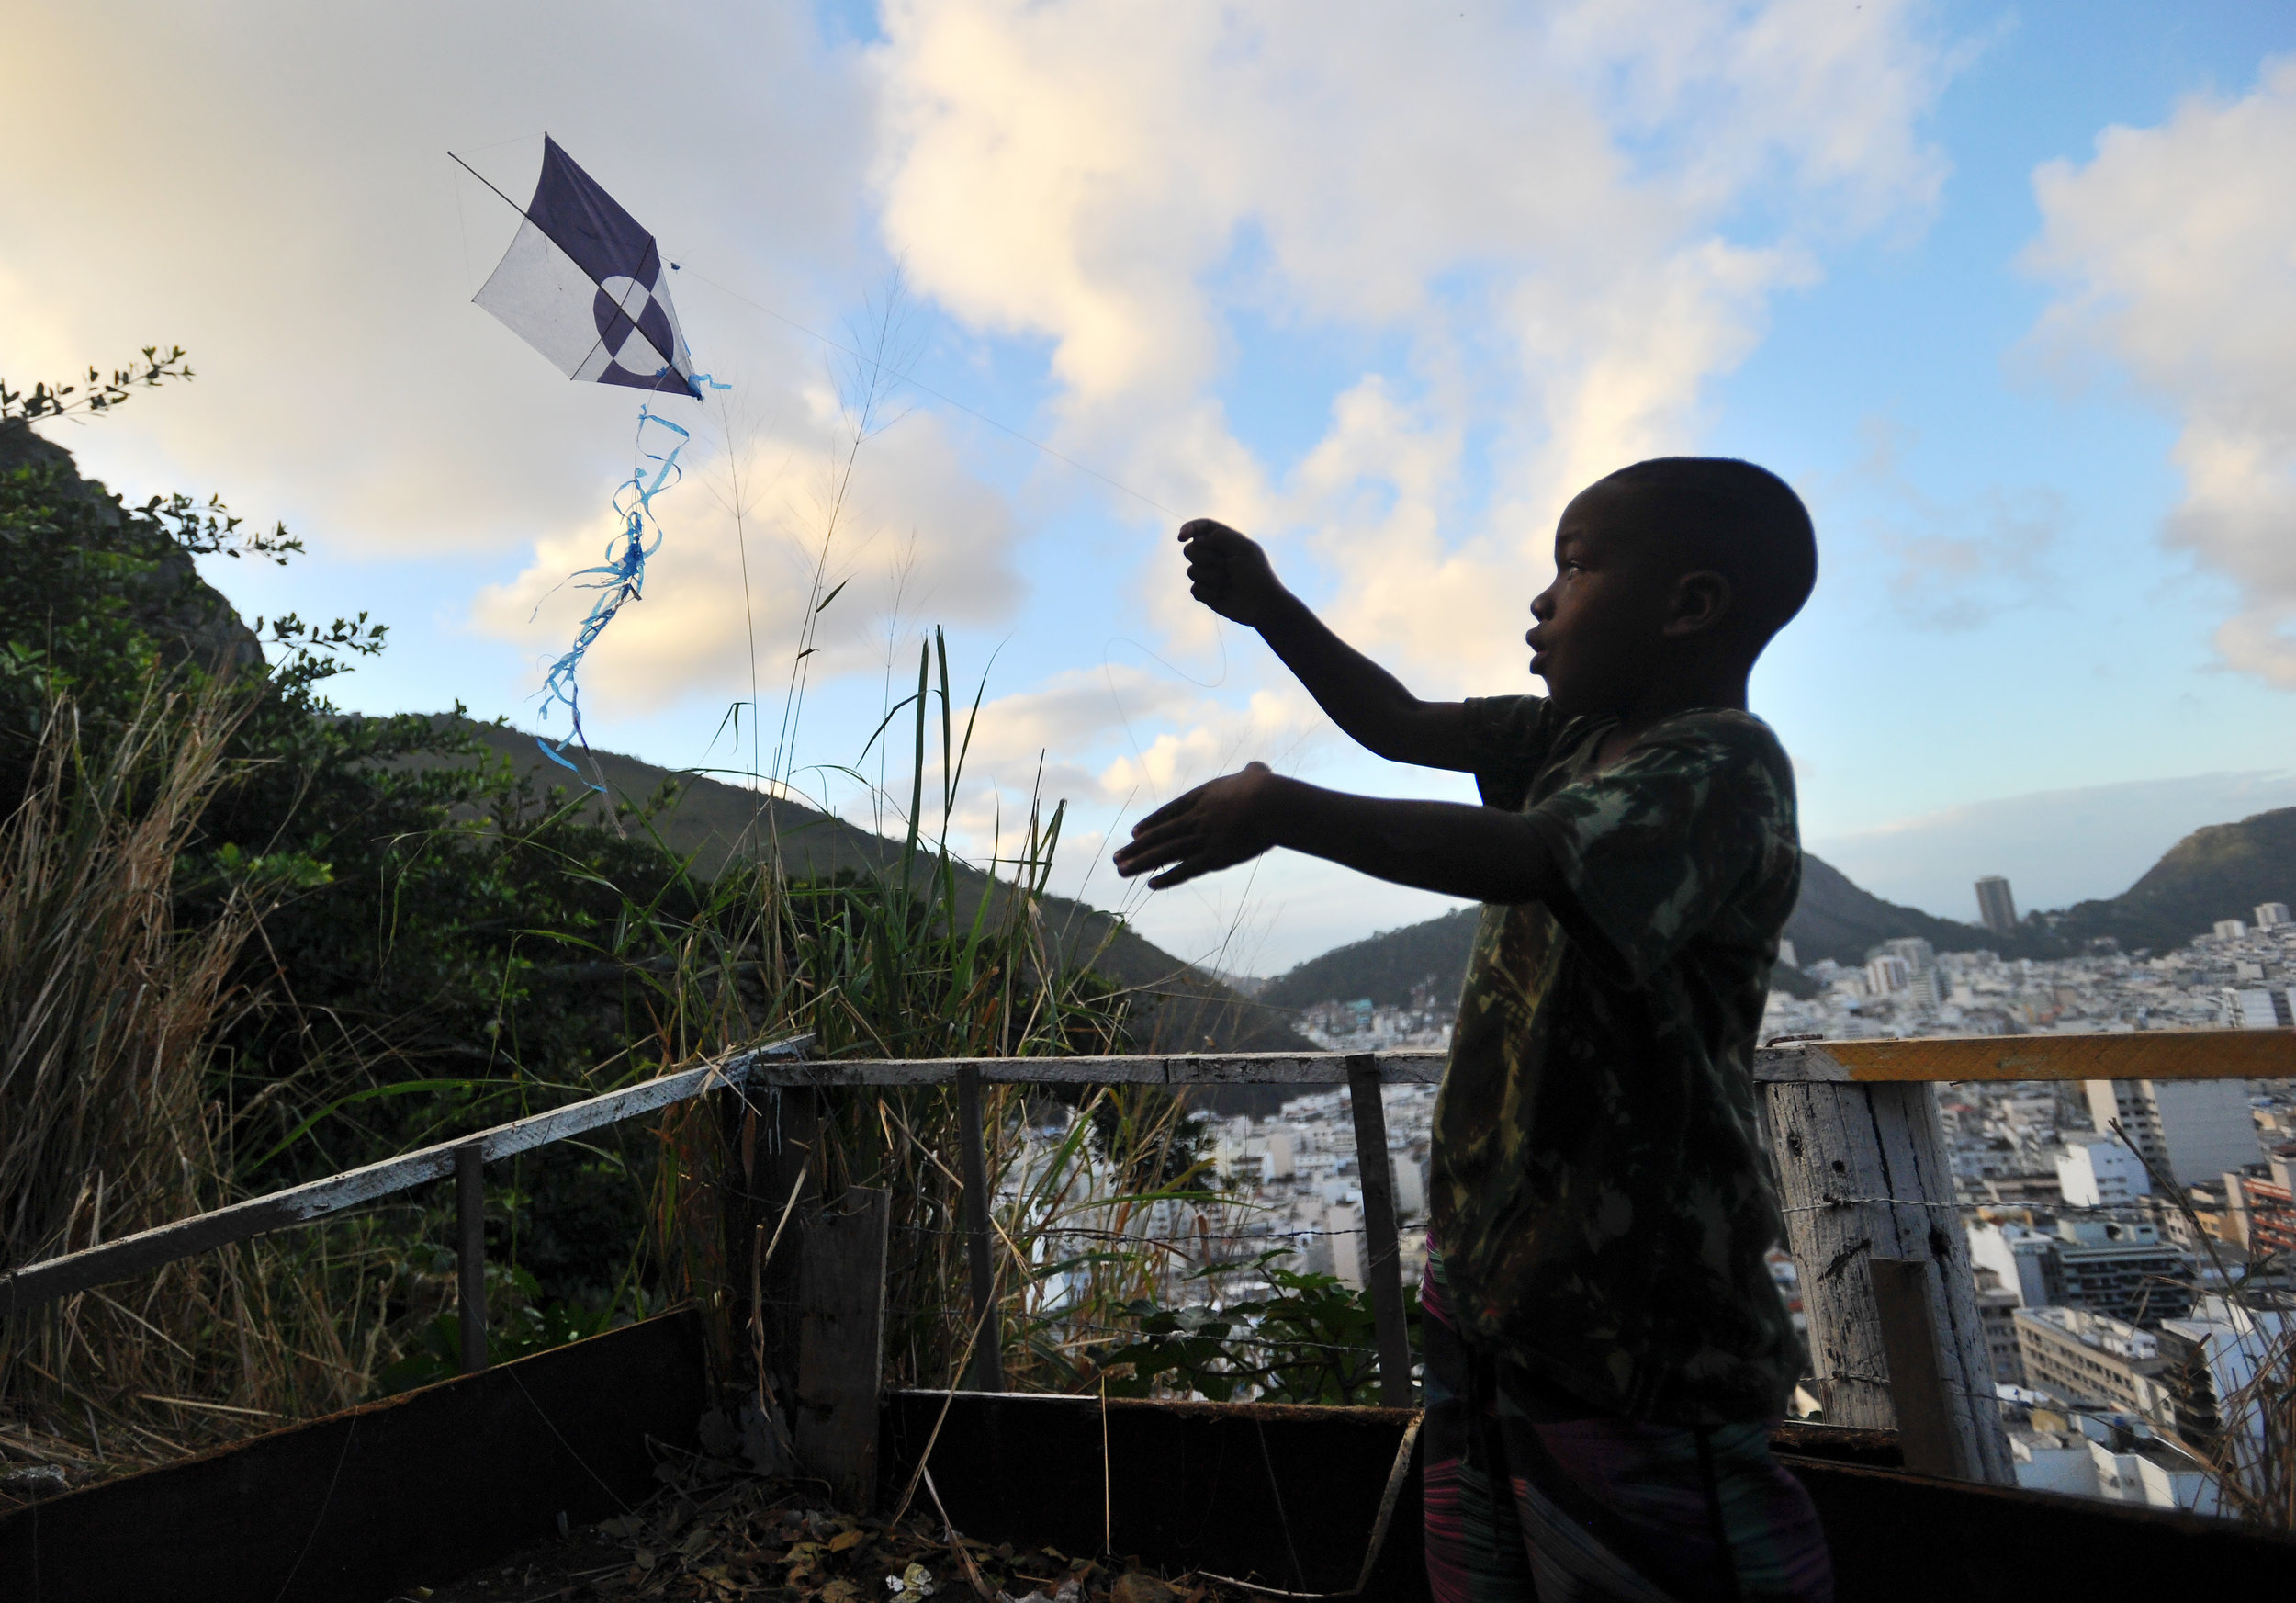 Mateus Deodoro, 7, flies a kite in the favela that he lives in in Rio de Janeiro, Brazil, on August 12, 2016. The children build their own kites and attempt to catch their friends' kites in order to win the game. (Sarah Stier | Ball State at the Games)